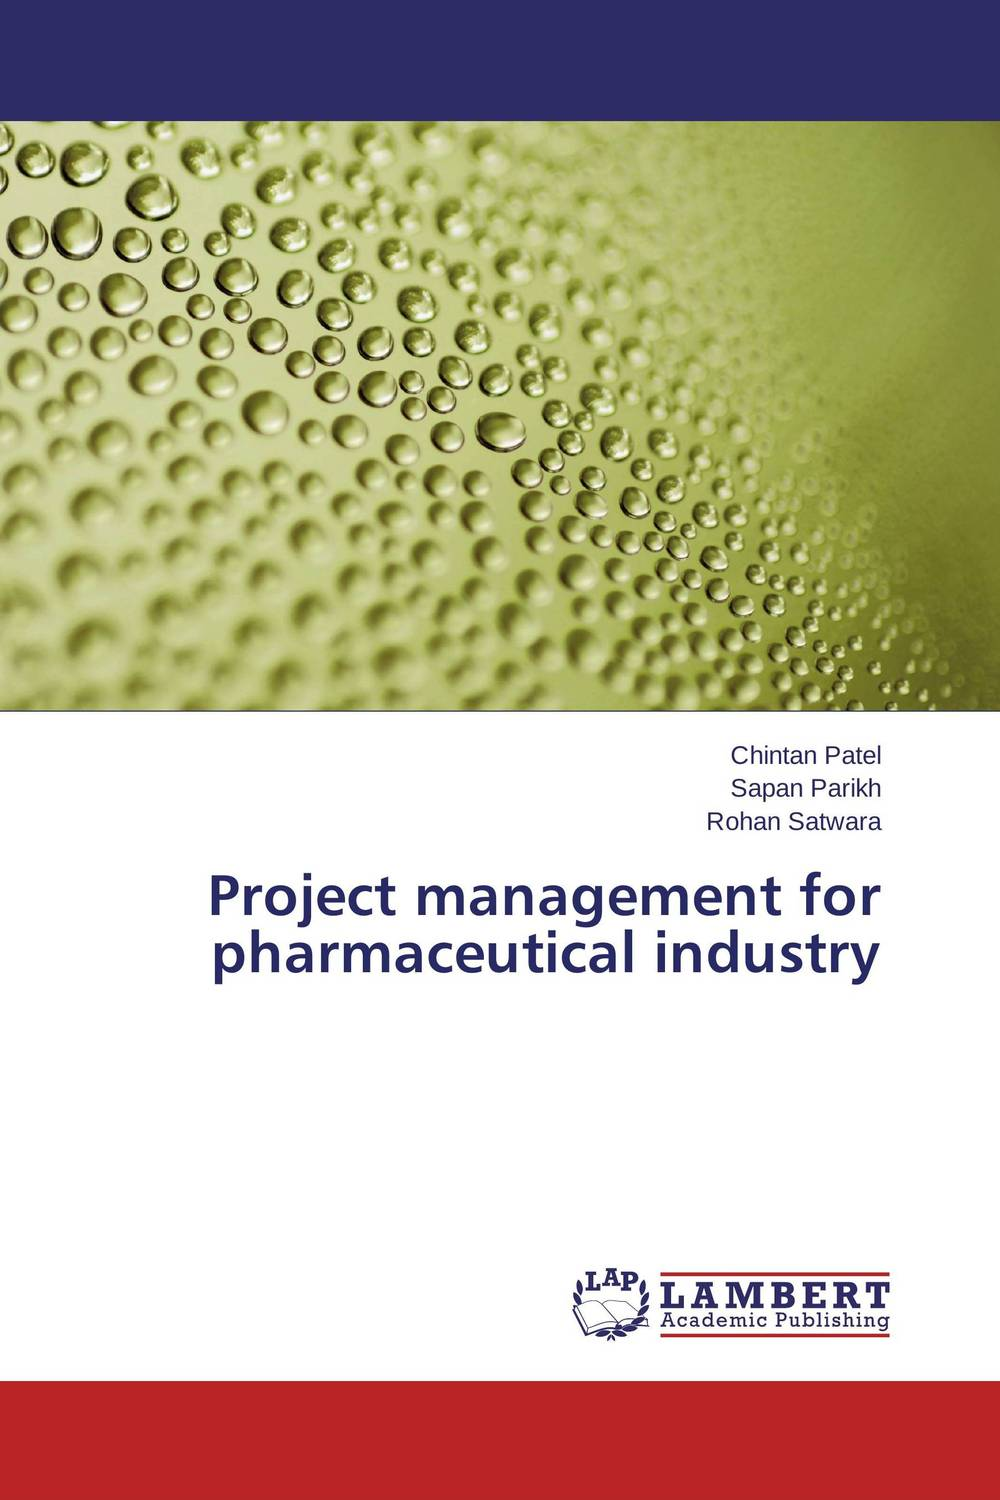 Project management for pharmaceutical industry